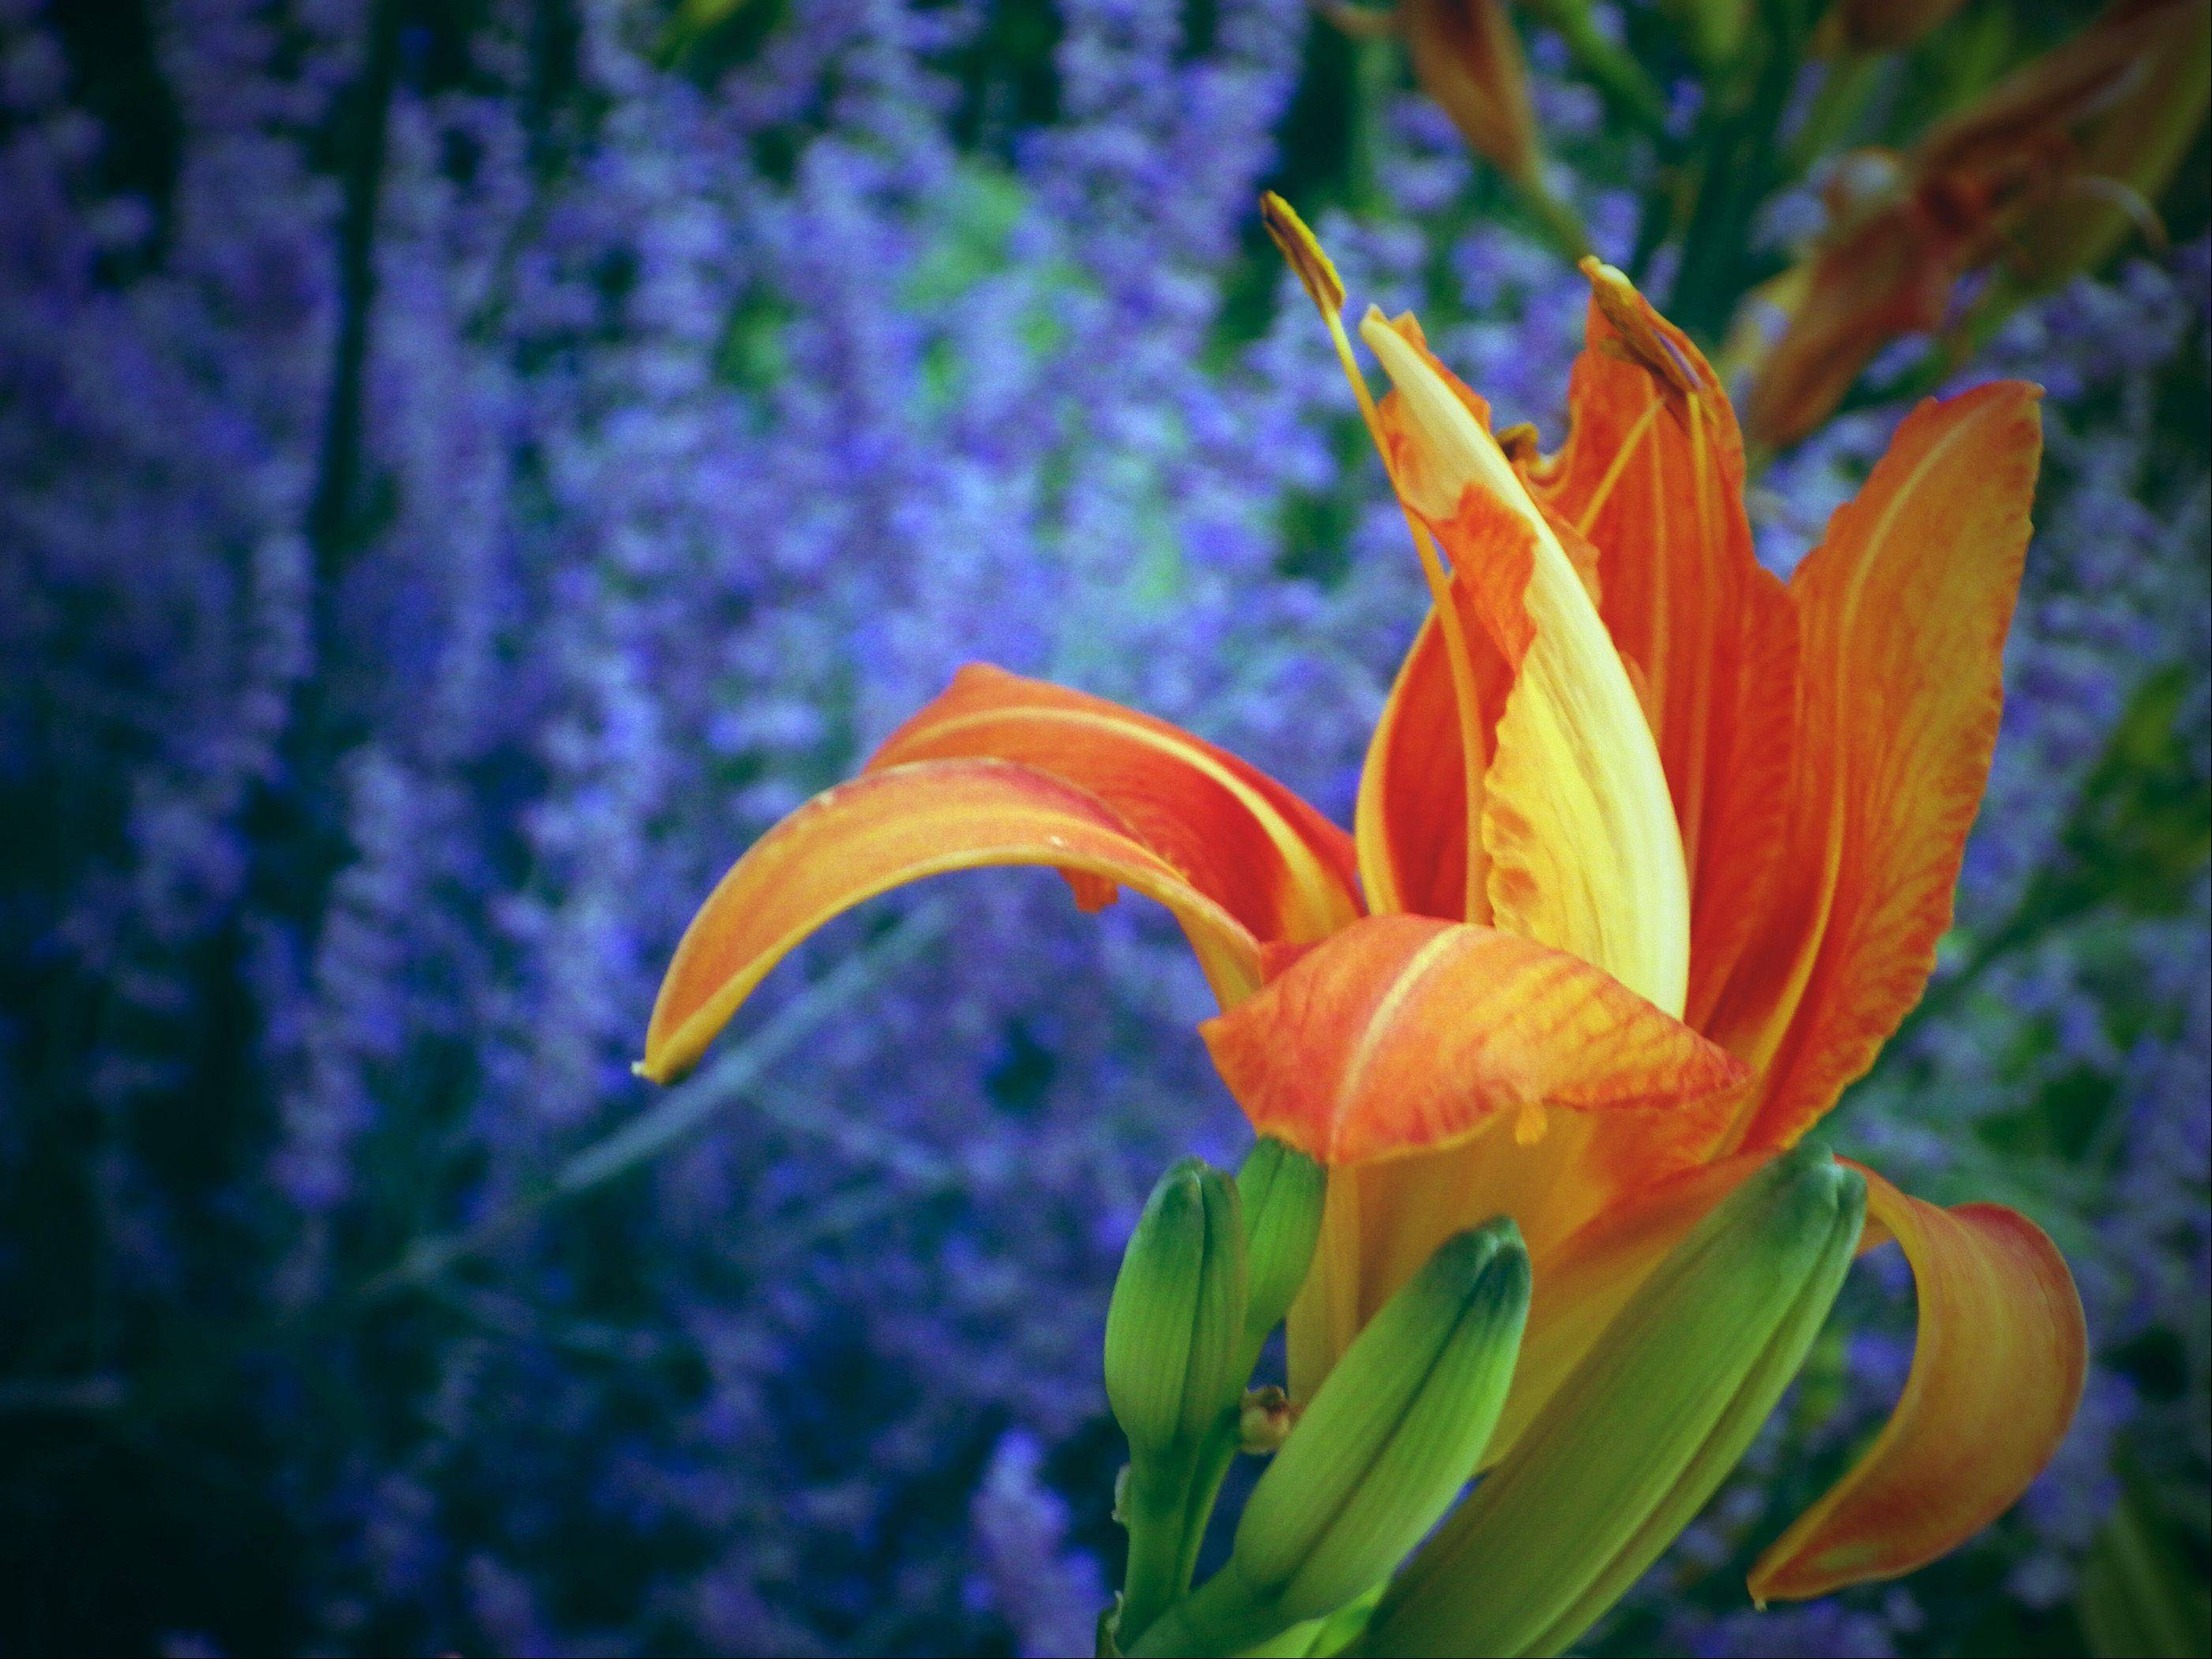 "I recently purchased a Pentax X5 camera and I was hunting around the property for interesting photo opportunities to try it out. All of our summer perennials were in bloom, including this Day Lily and the Russian Sage behind it serving as a complementing and contrasting back ground. I shot several exposures, selected what I thought was the best of them, and then applied one of the digital creative filters, ""Toy Camera,"" to achieve this photo."